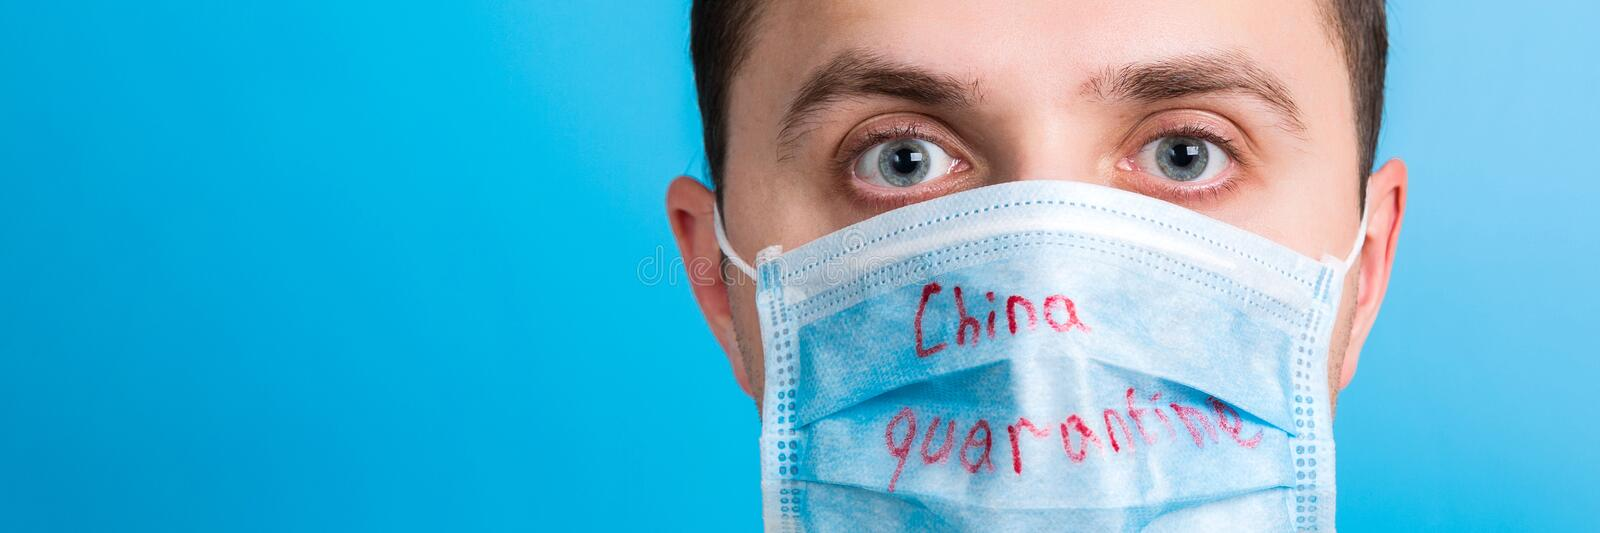 Portrait of young man wearing medical mask with China quarantine word at blue background. Coronavirus concept. Respiratory. Protection royalty free stock photography